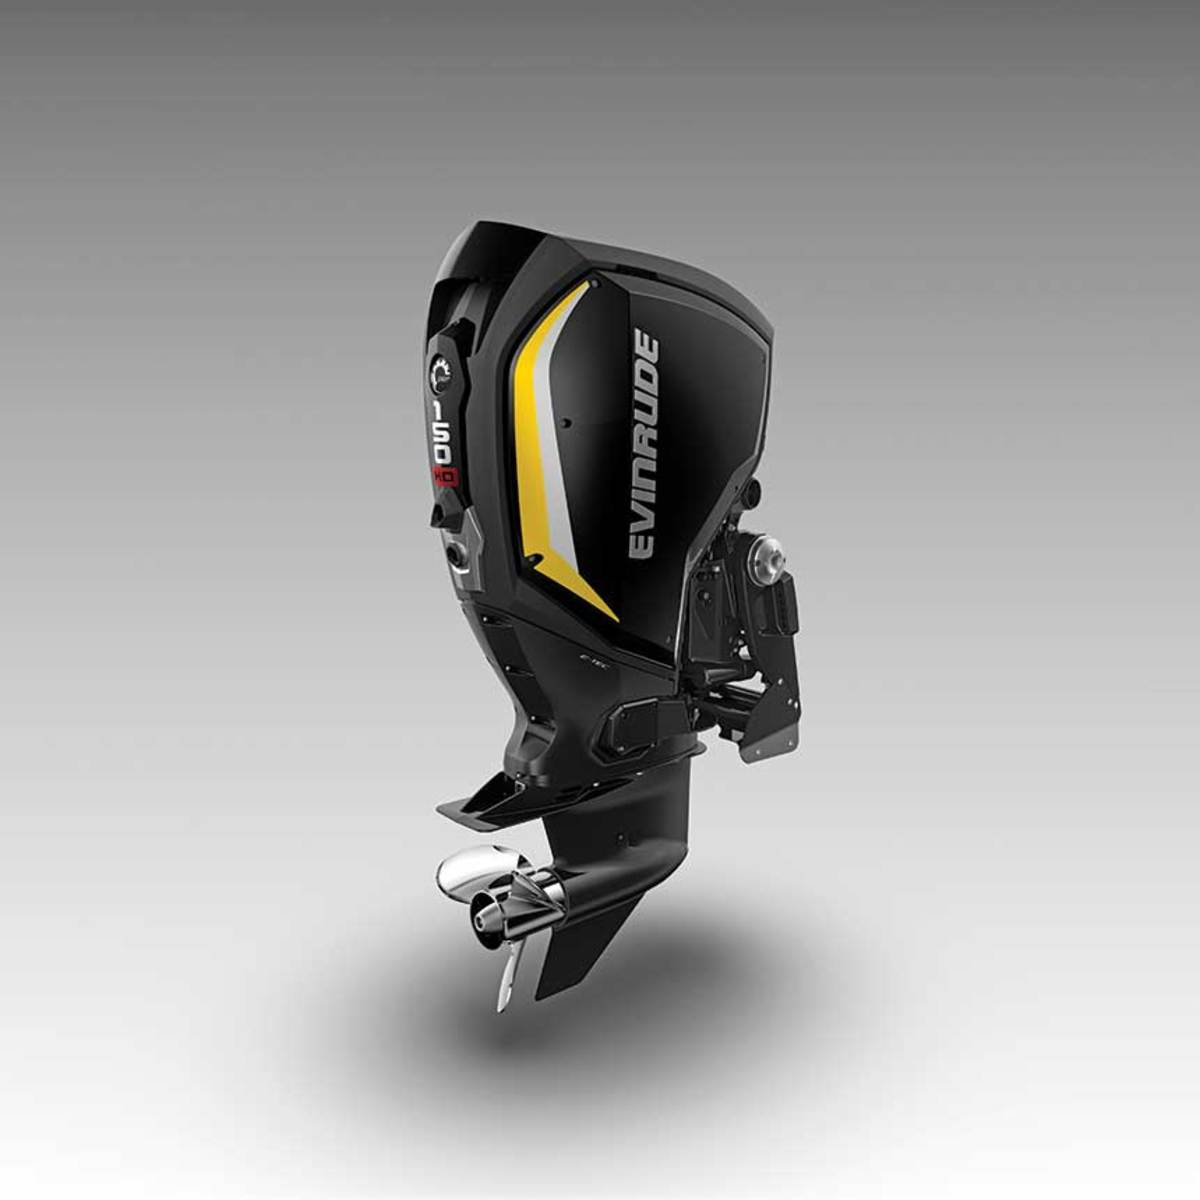 Evinrude's new 3-cylinder outboards feature many of the high-tech systems of larger engines.